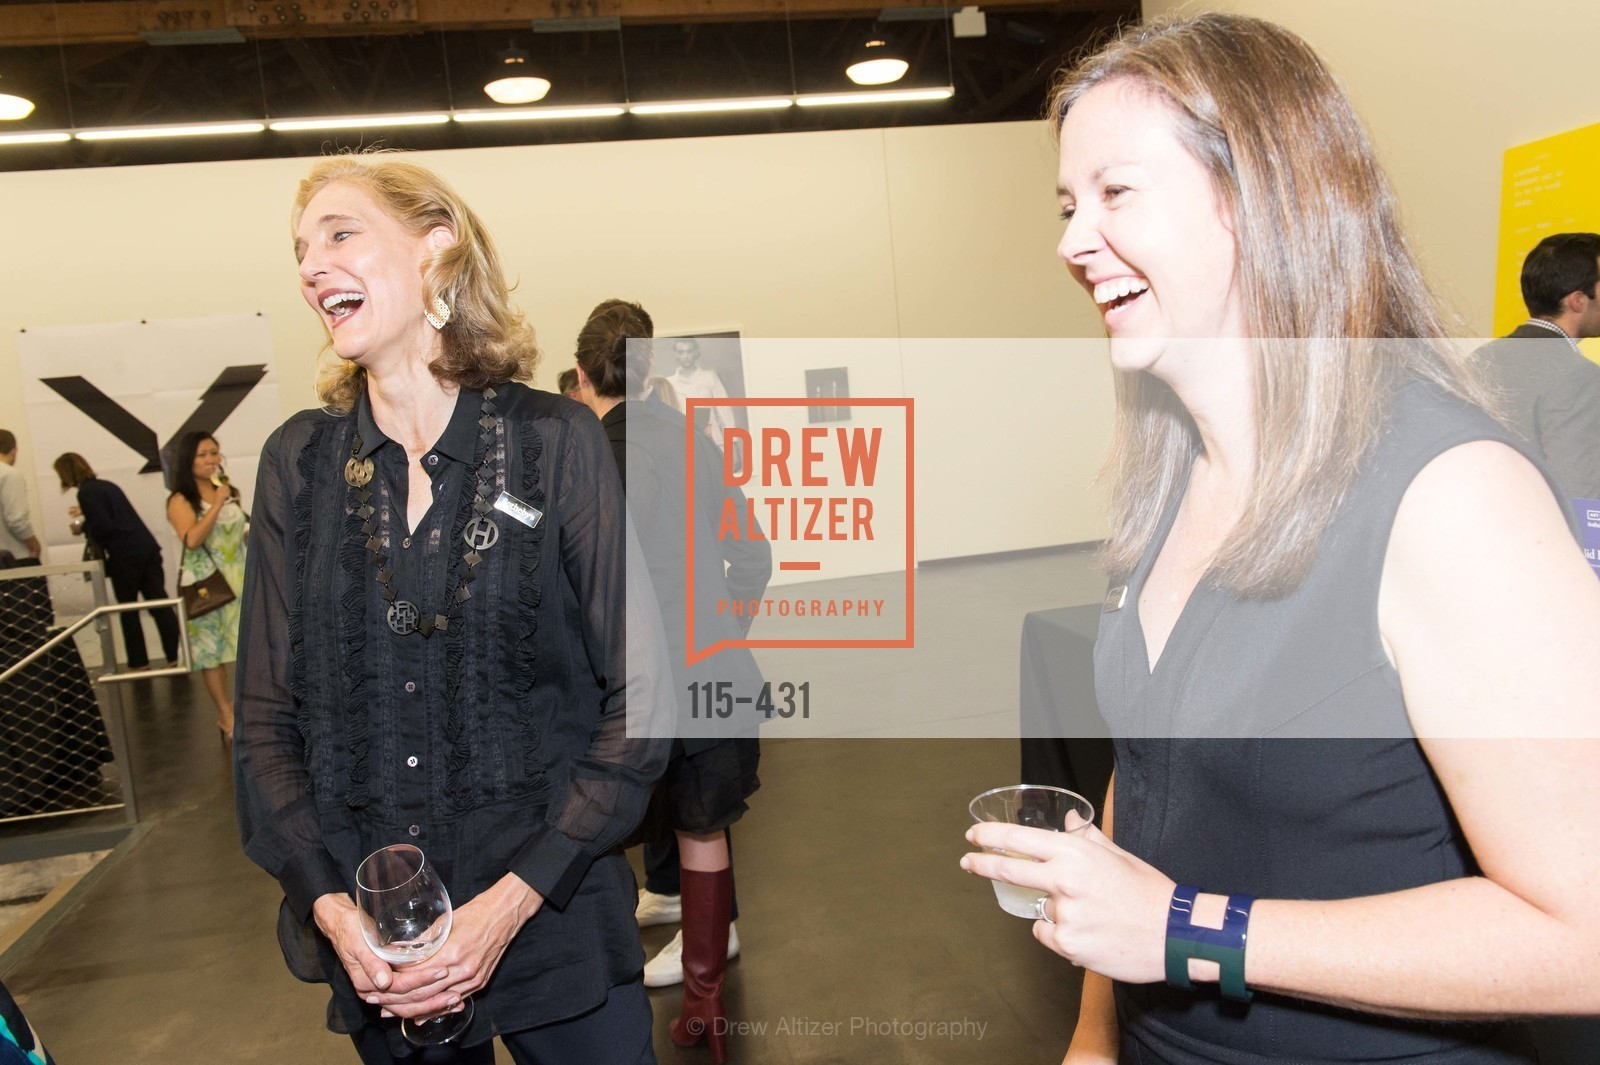 Jennifer Biederbeck, Sarah Shepard, Artsy + Sotheby's Closing Party, Fused. 1401 16th Street, October 30th, 2015,Drew Altizer, Drew Altizer Photography, full-service event agency, private events, San Francisco photographer, photographer California